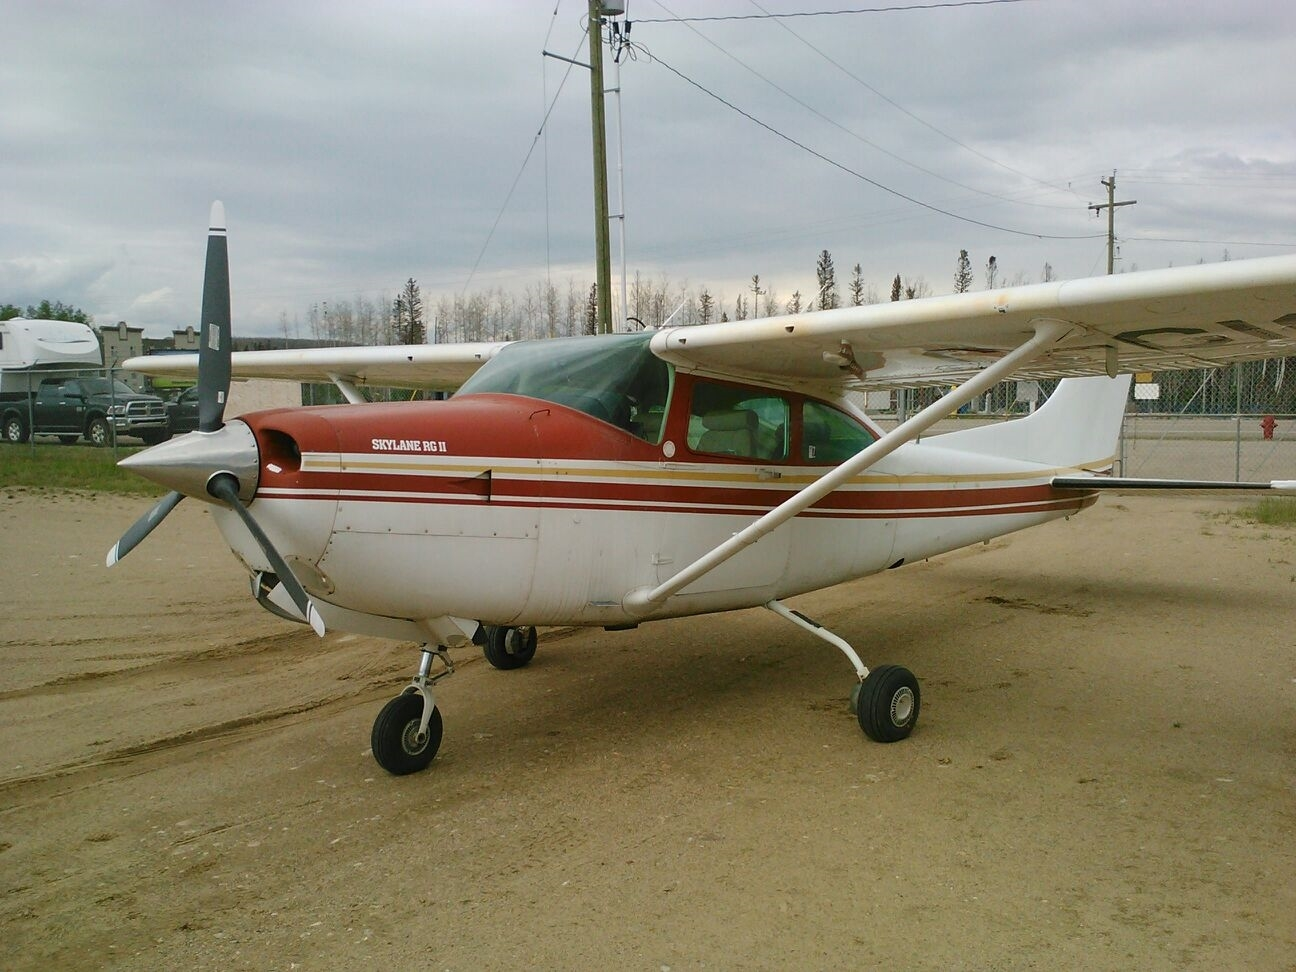 Aircraft Listing - Cessna 182 RG II listed for sale